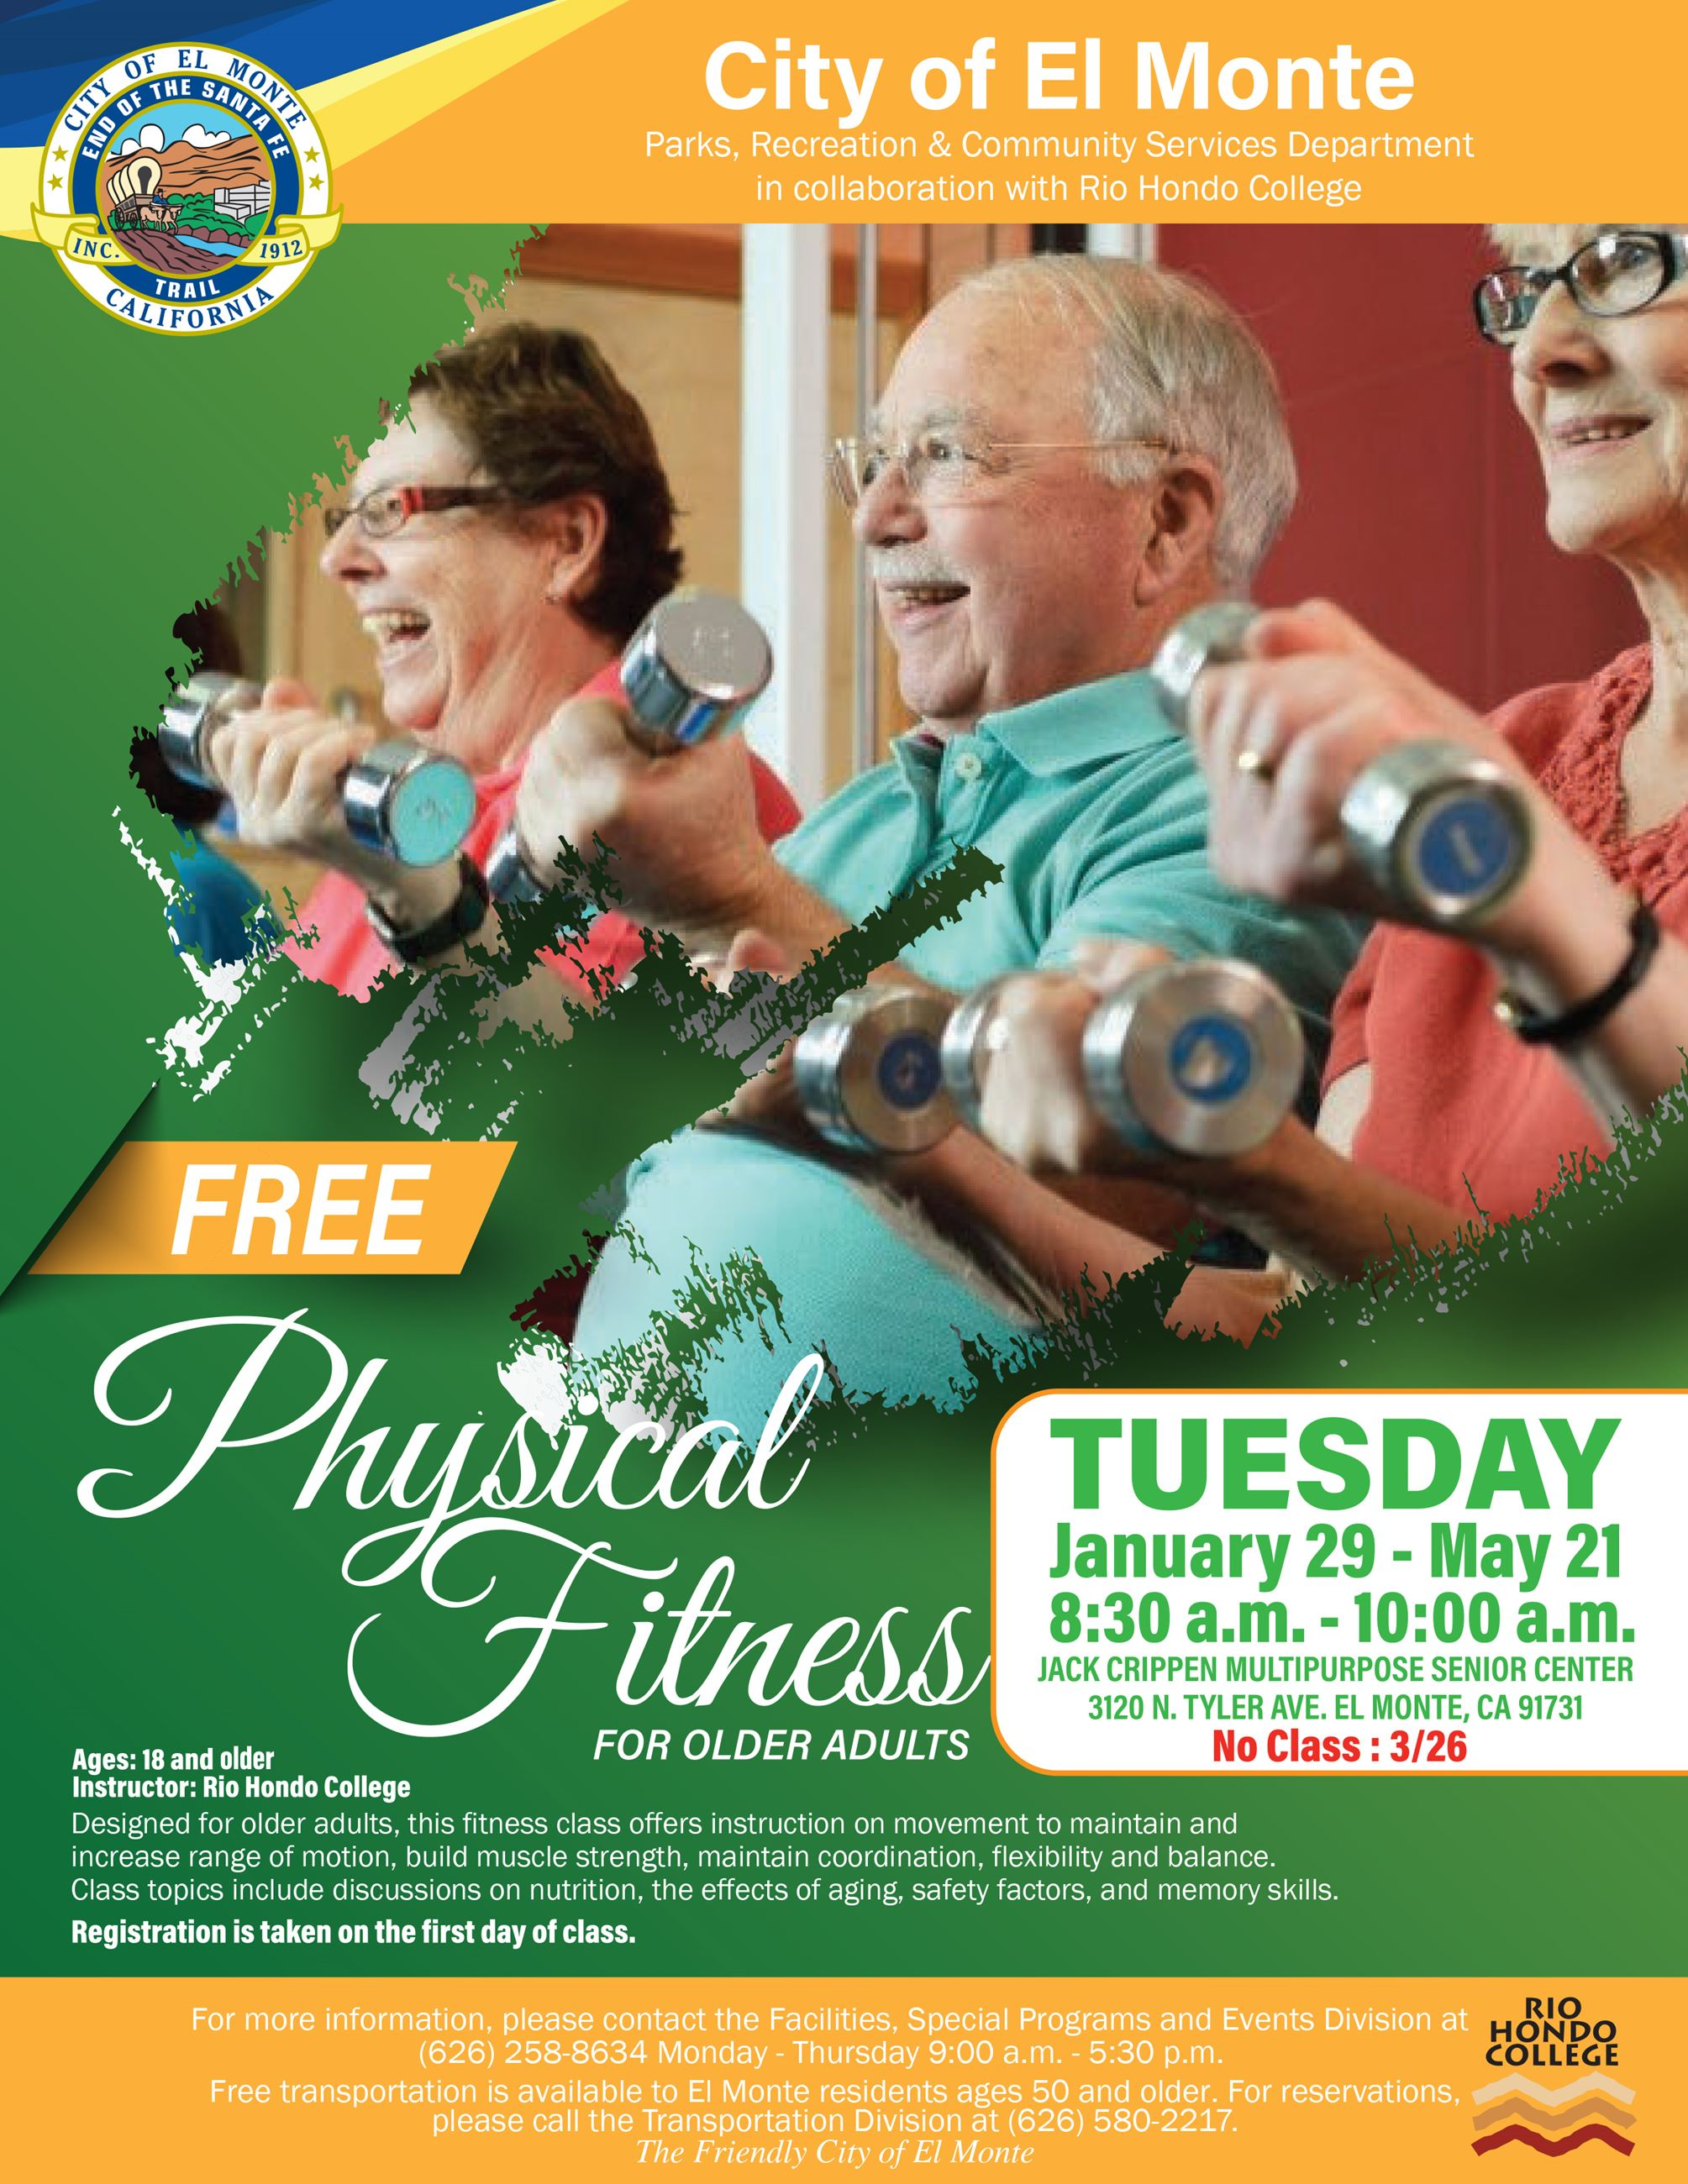 Fitness for Older Adults_Flyer_010219_C (2)